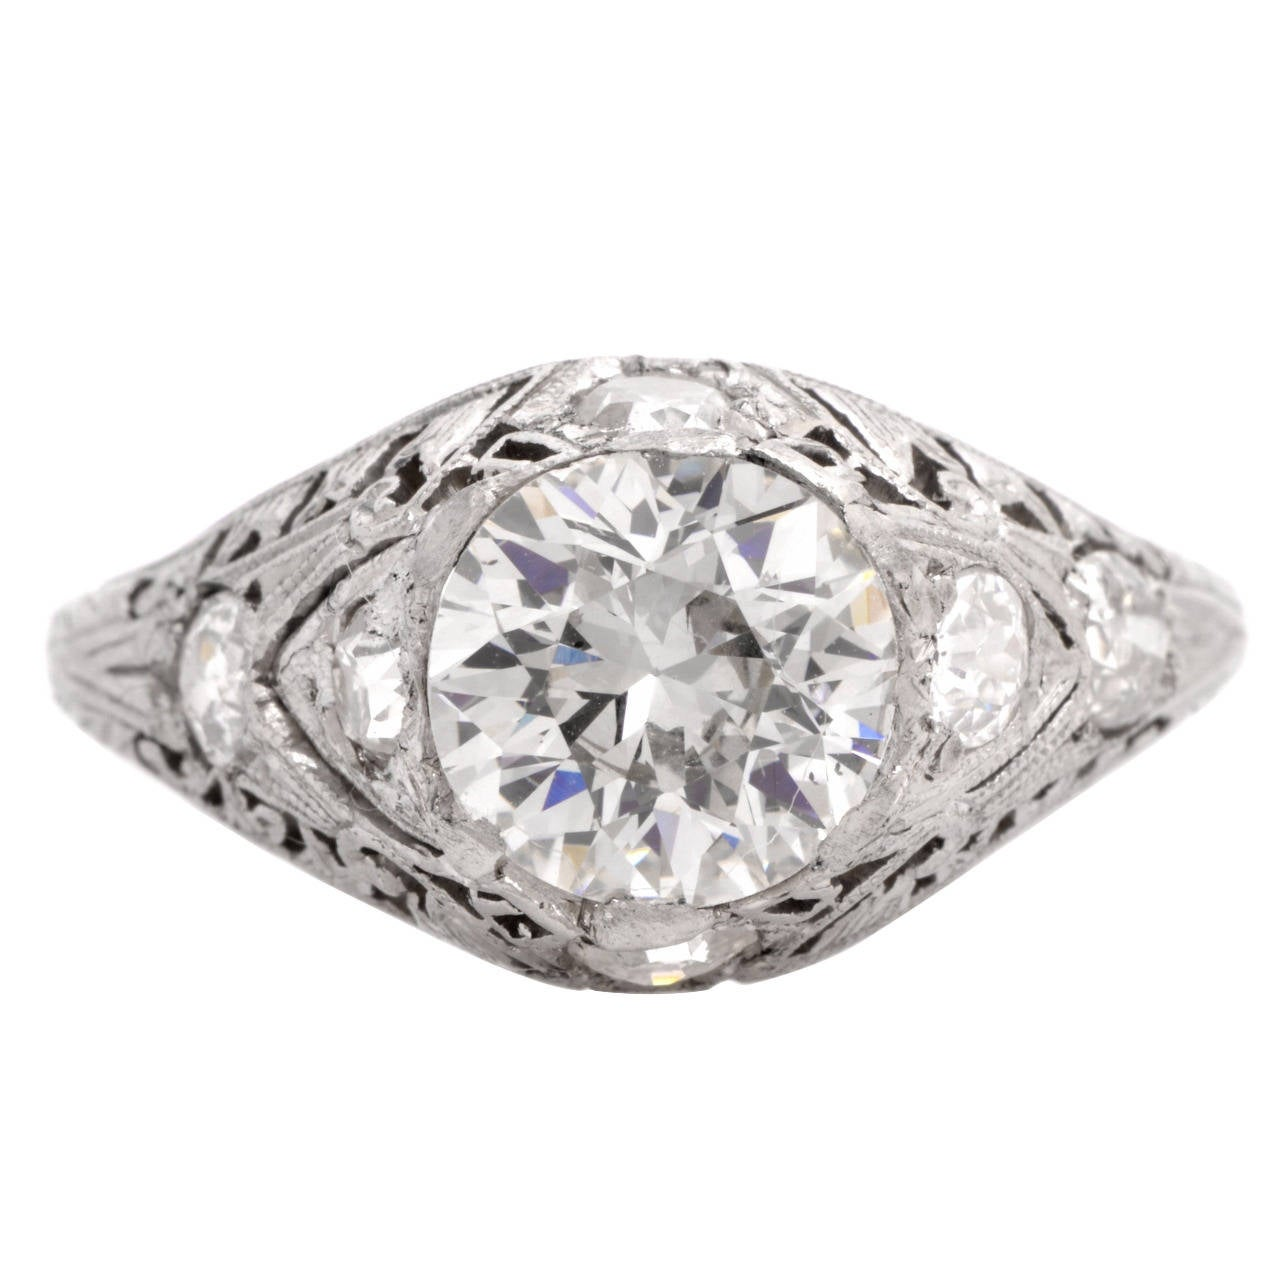 Art Deco 2 77 Carat Diamond Platinum Filigree Engagement Ring at 1stdibs